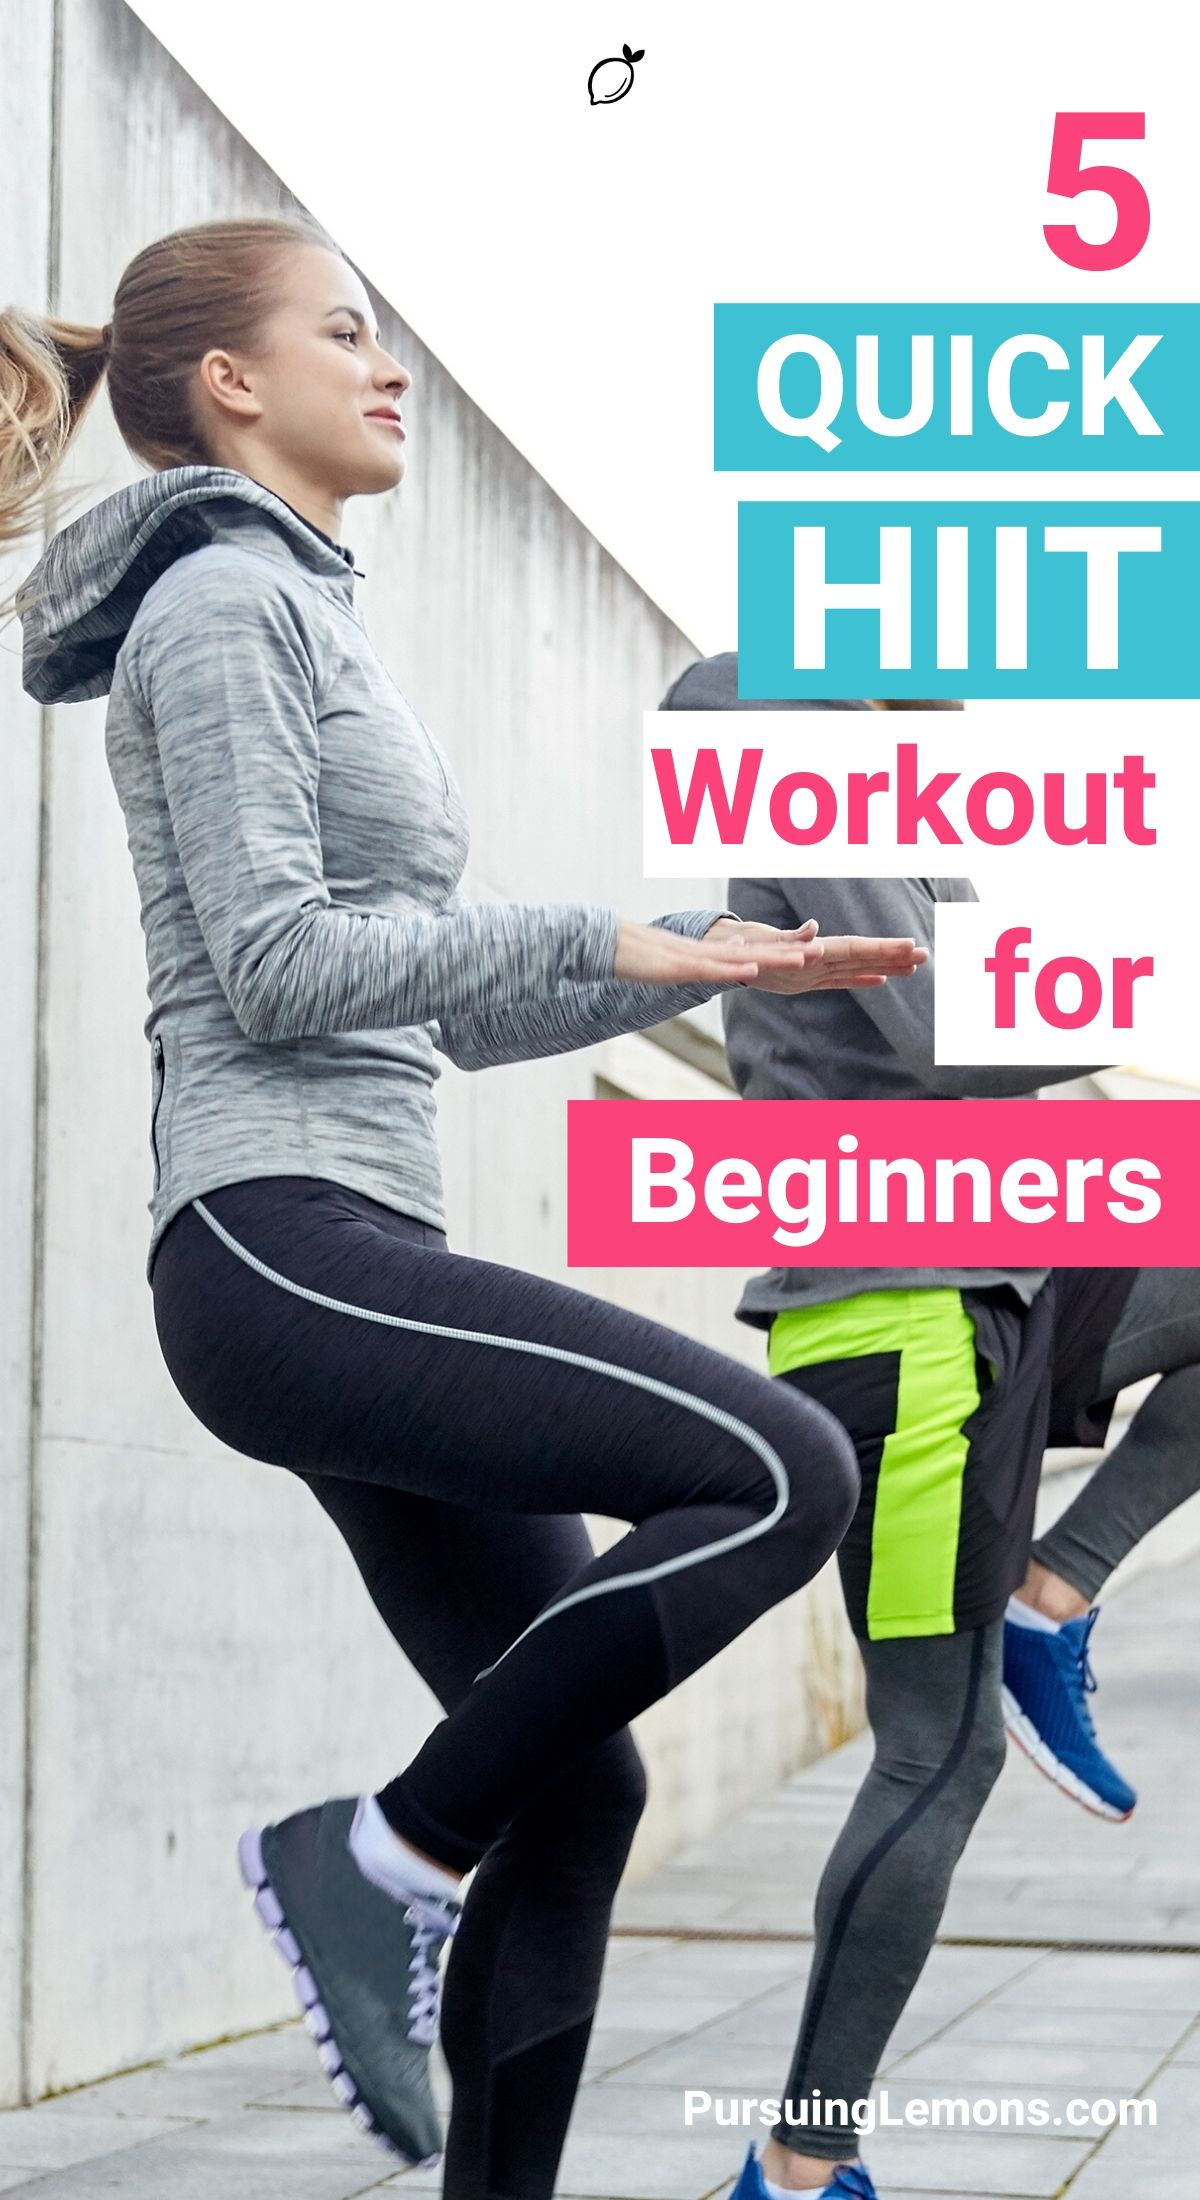 5 Quick HIIT Workouts For Beginners | Are you trying to lose weight or just improve your overall fitness? Here are some really effective HIIT workouts for beginners to lose weight and build those muscles. #HIIT #Workouts #workoutathome